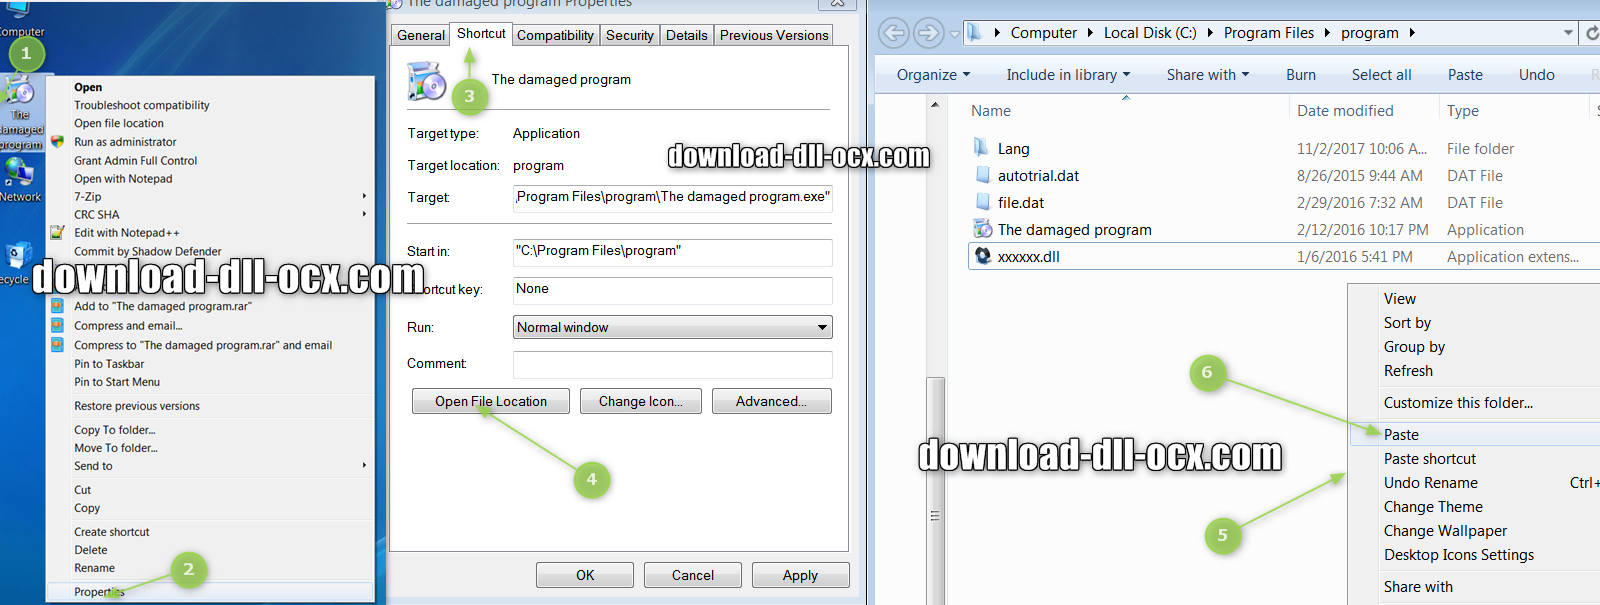 how to install agentdp2.dll file? for fix missing